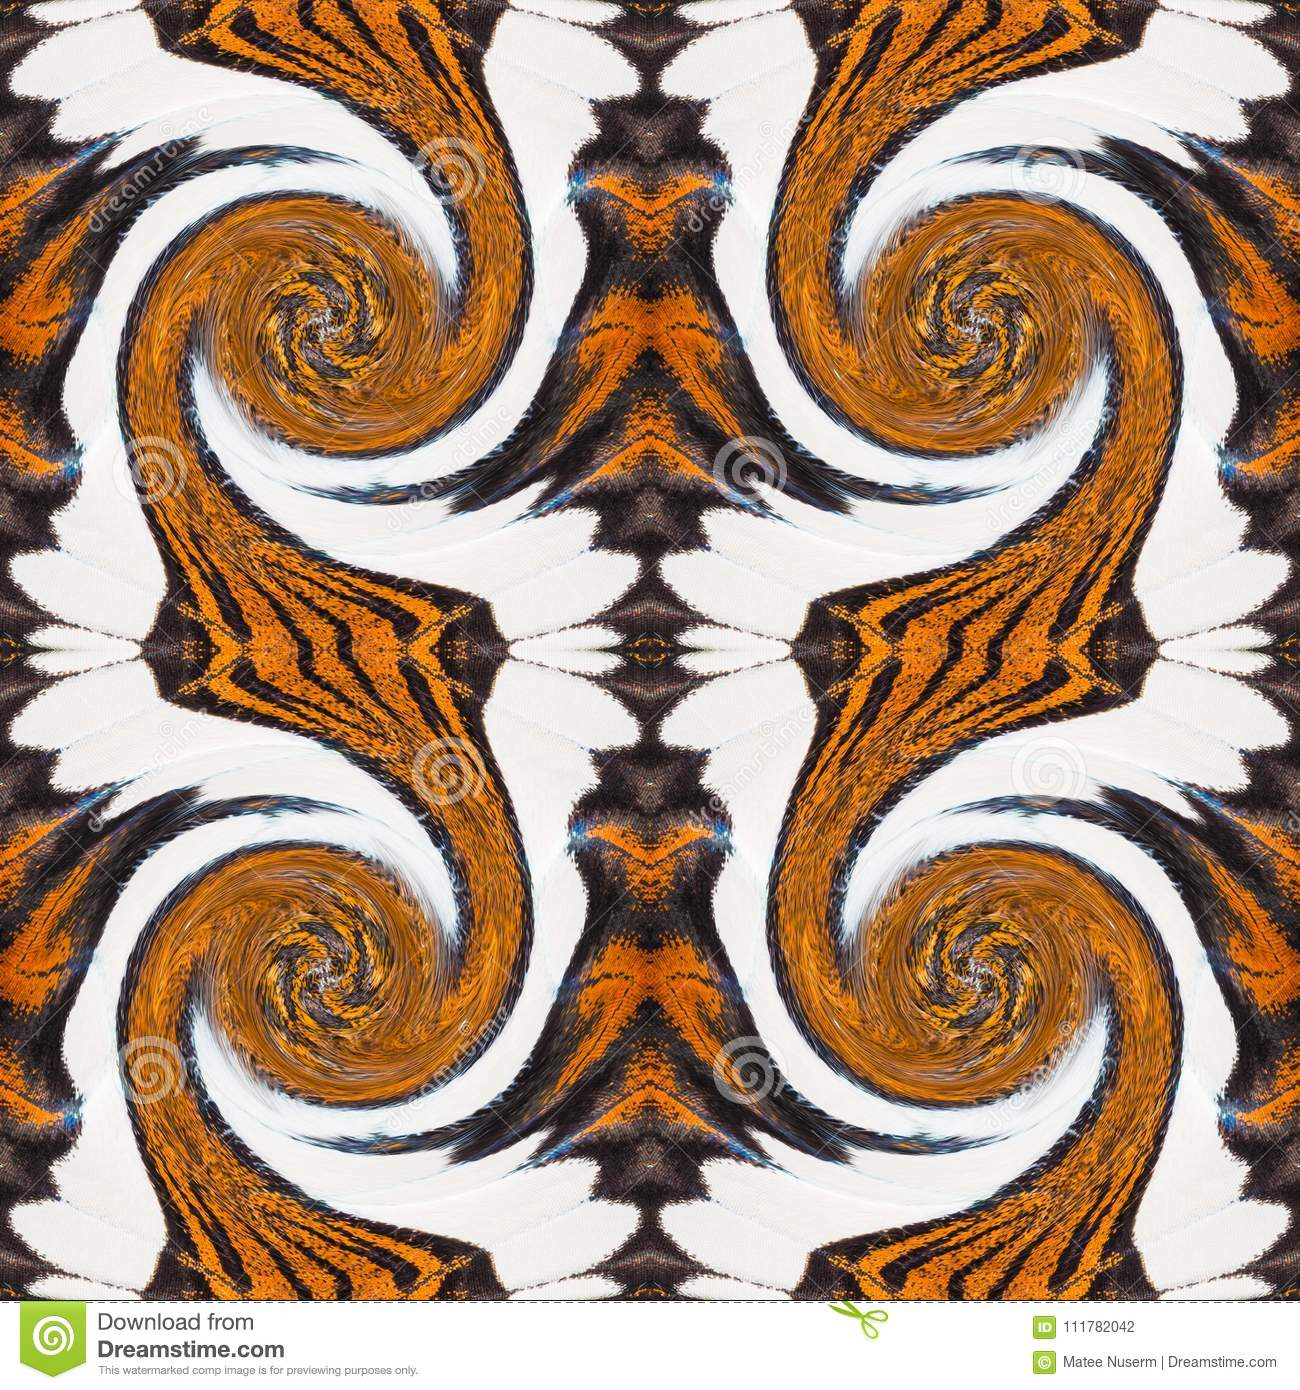 Background created from butterfly wings